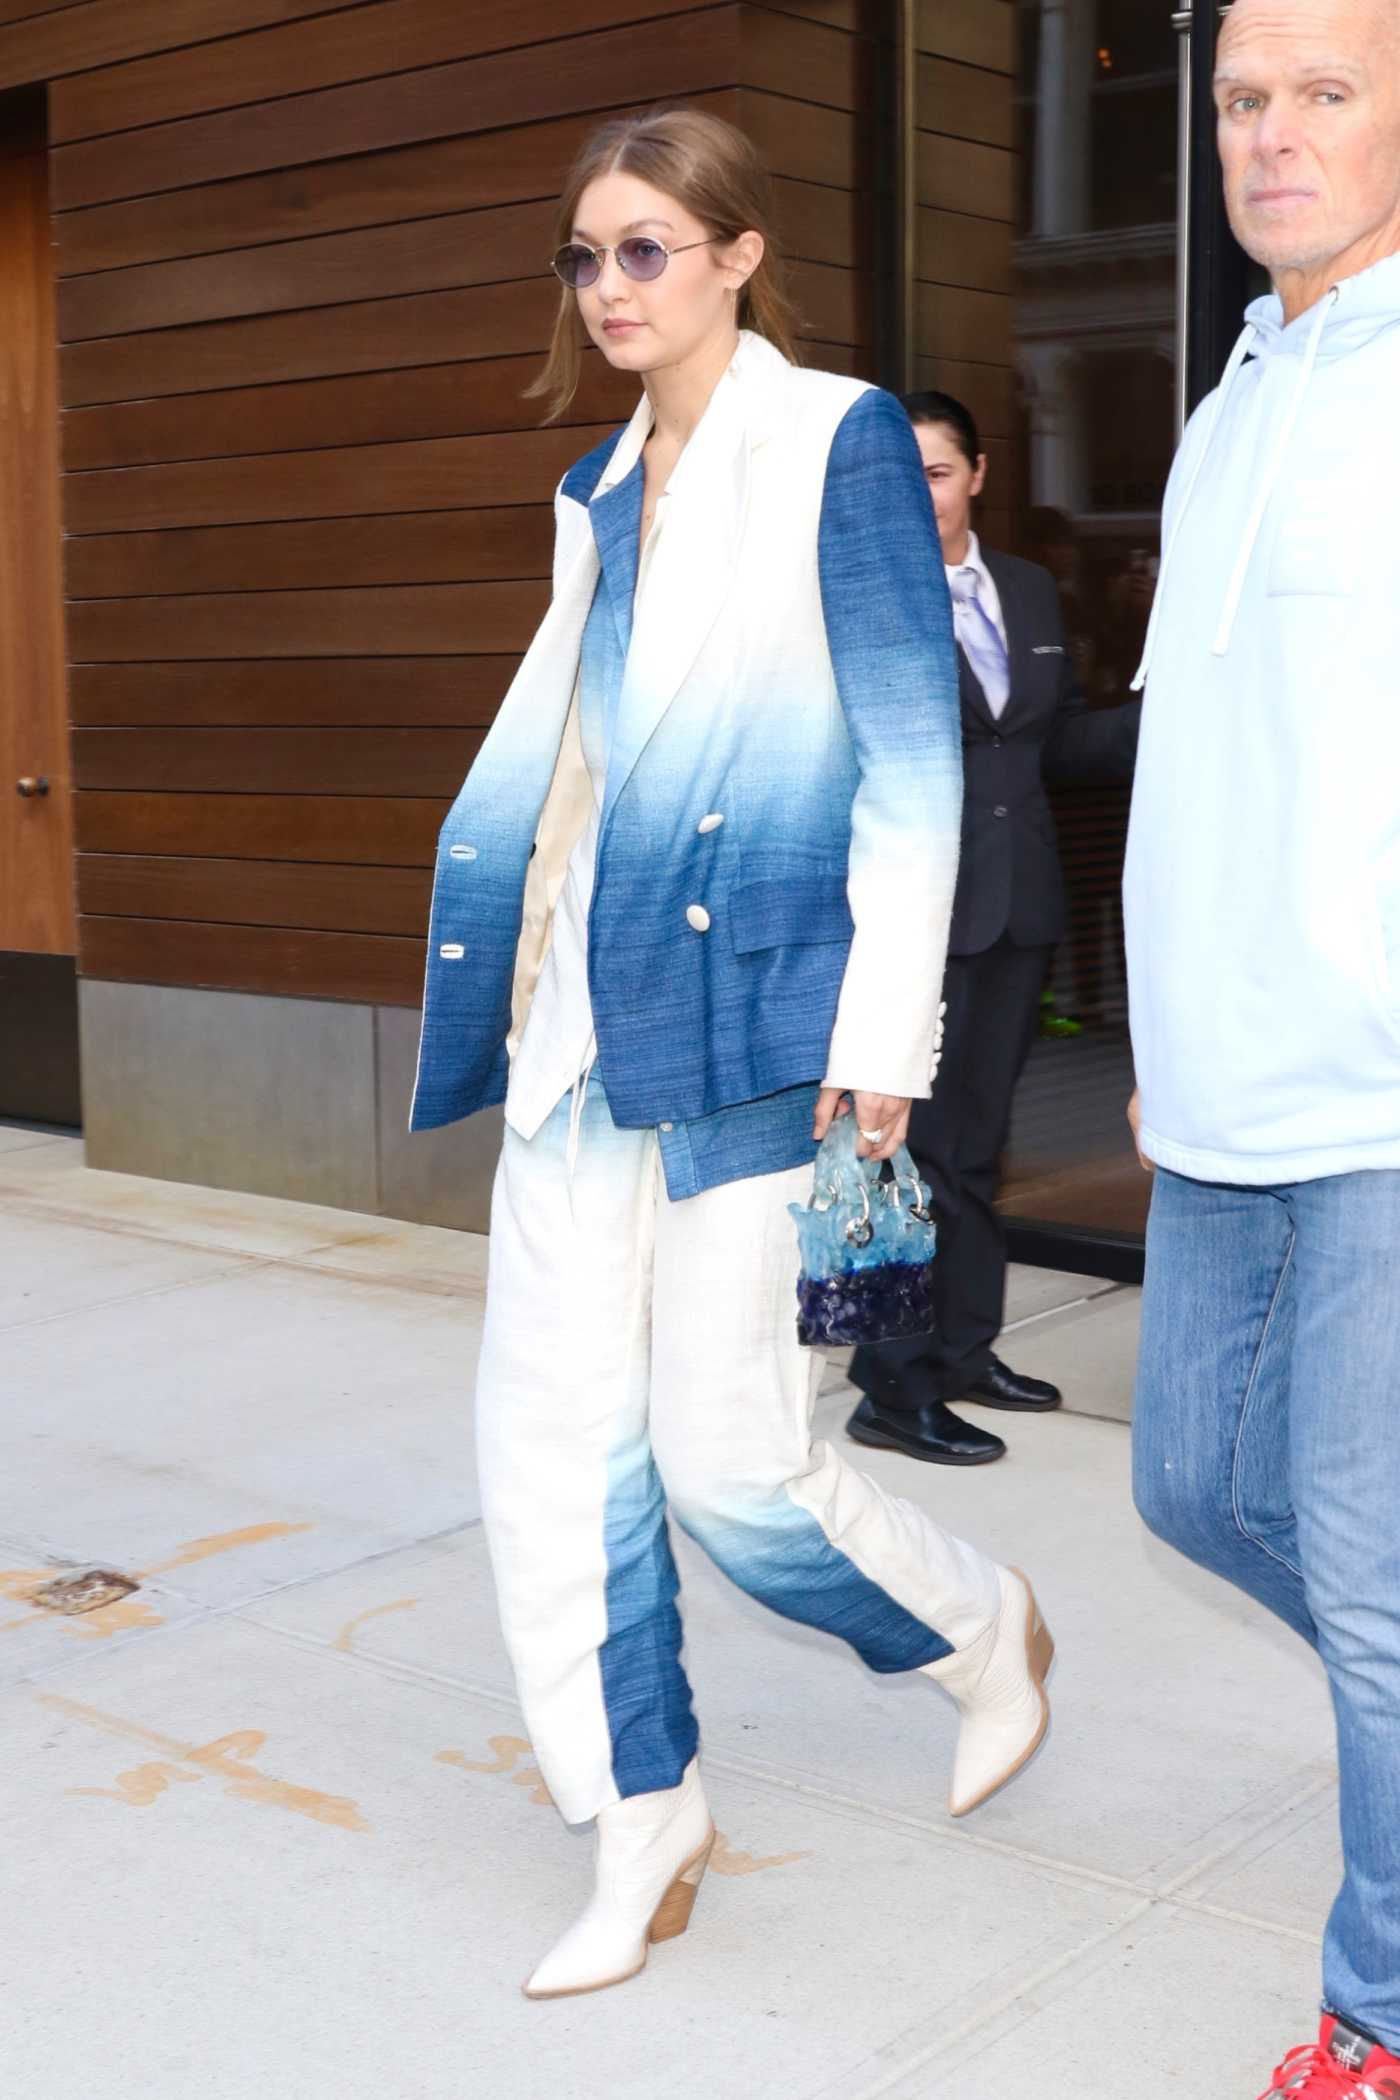 Gigi Hadid in a Two Tone Pantsuit Was Seen Out in New York 10/19/2019